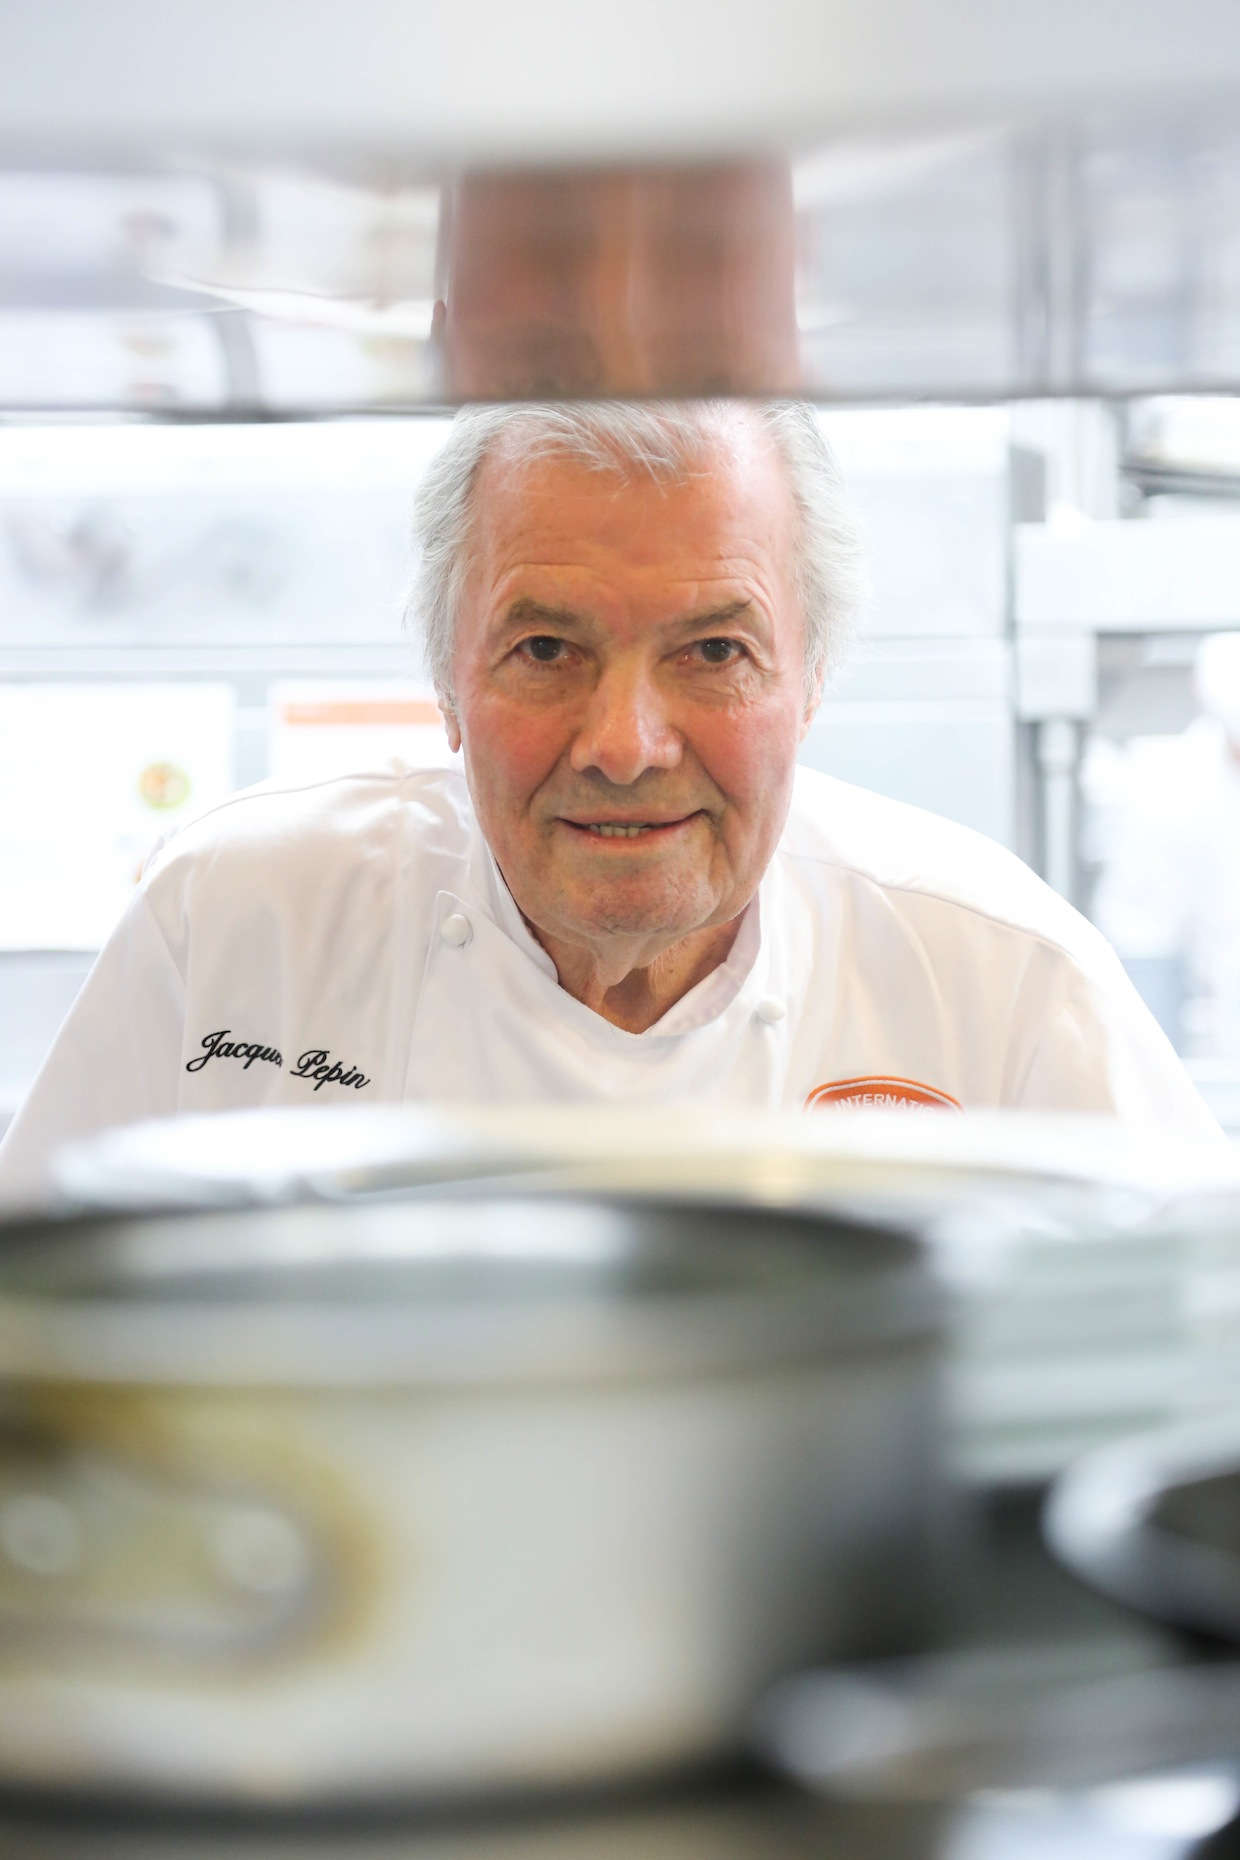 JACQUES-PEPIN-THENEWPOTATO-2